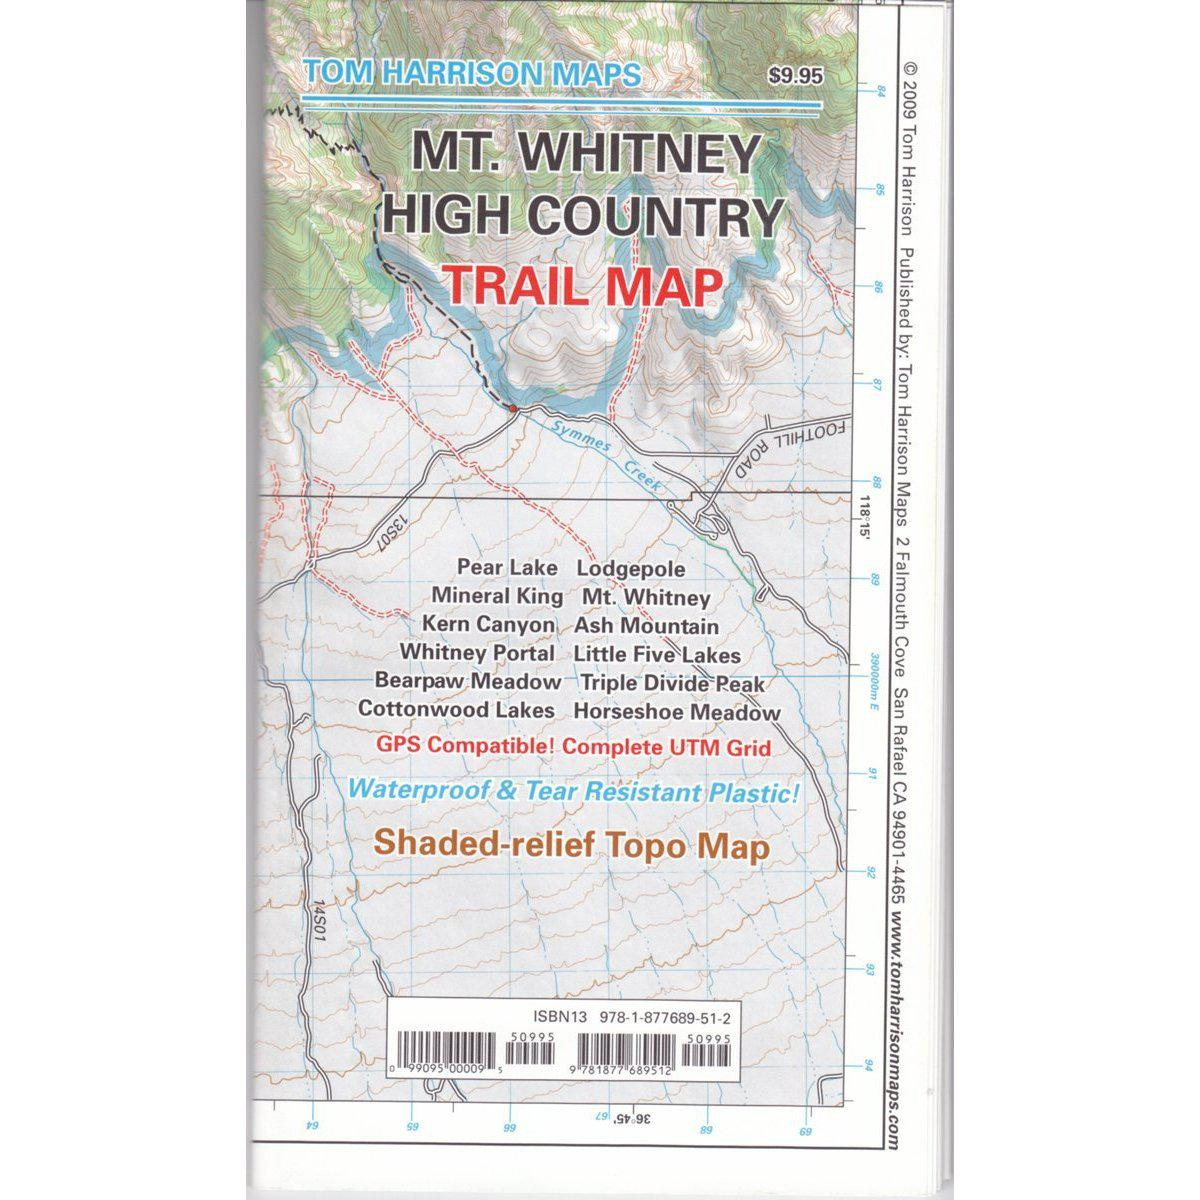 Tom Harrison Maps: Mt. Whitney High Country